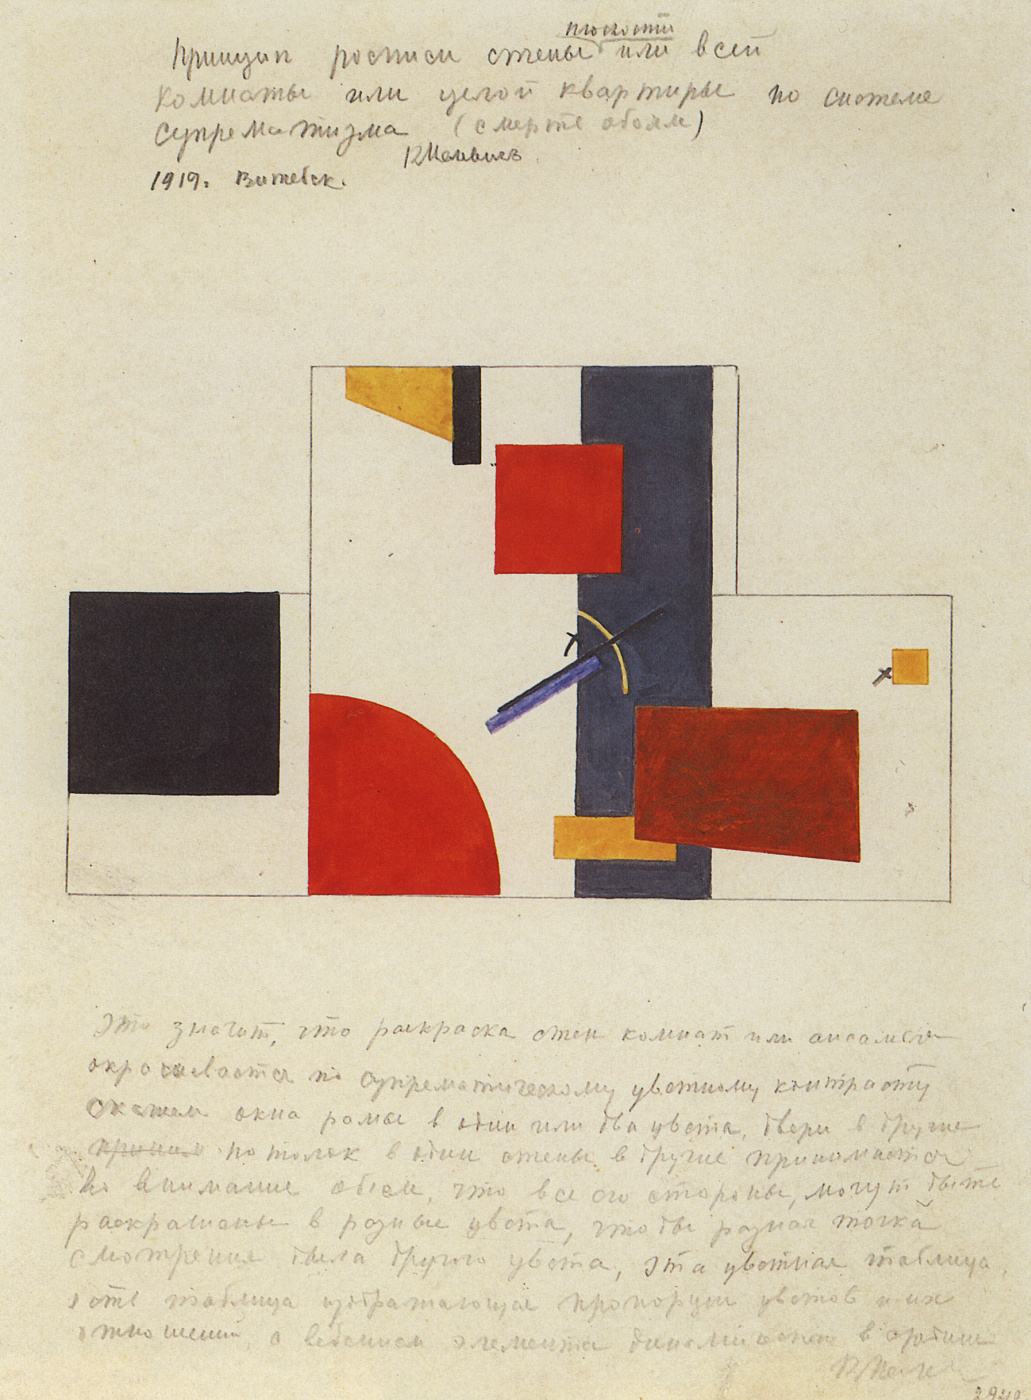 Kazimir Malevich. The principle of painting the walls, surfaces or entire rooms, or entire apartments for the system of Suprematism (death to the Wallpaper)